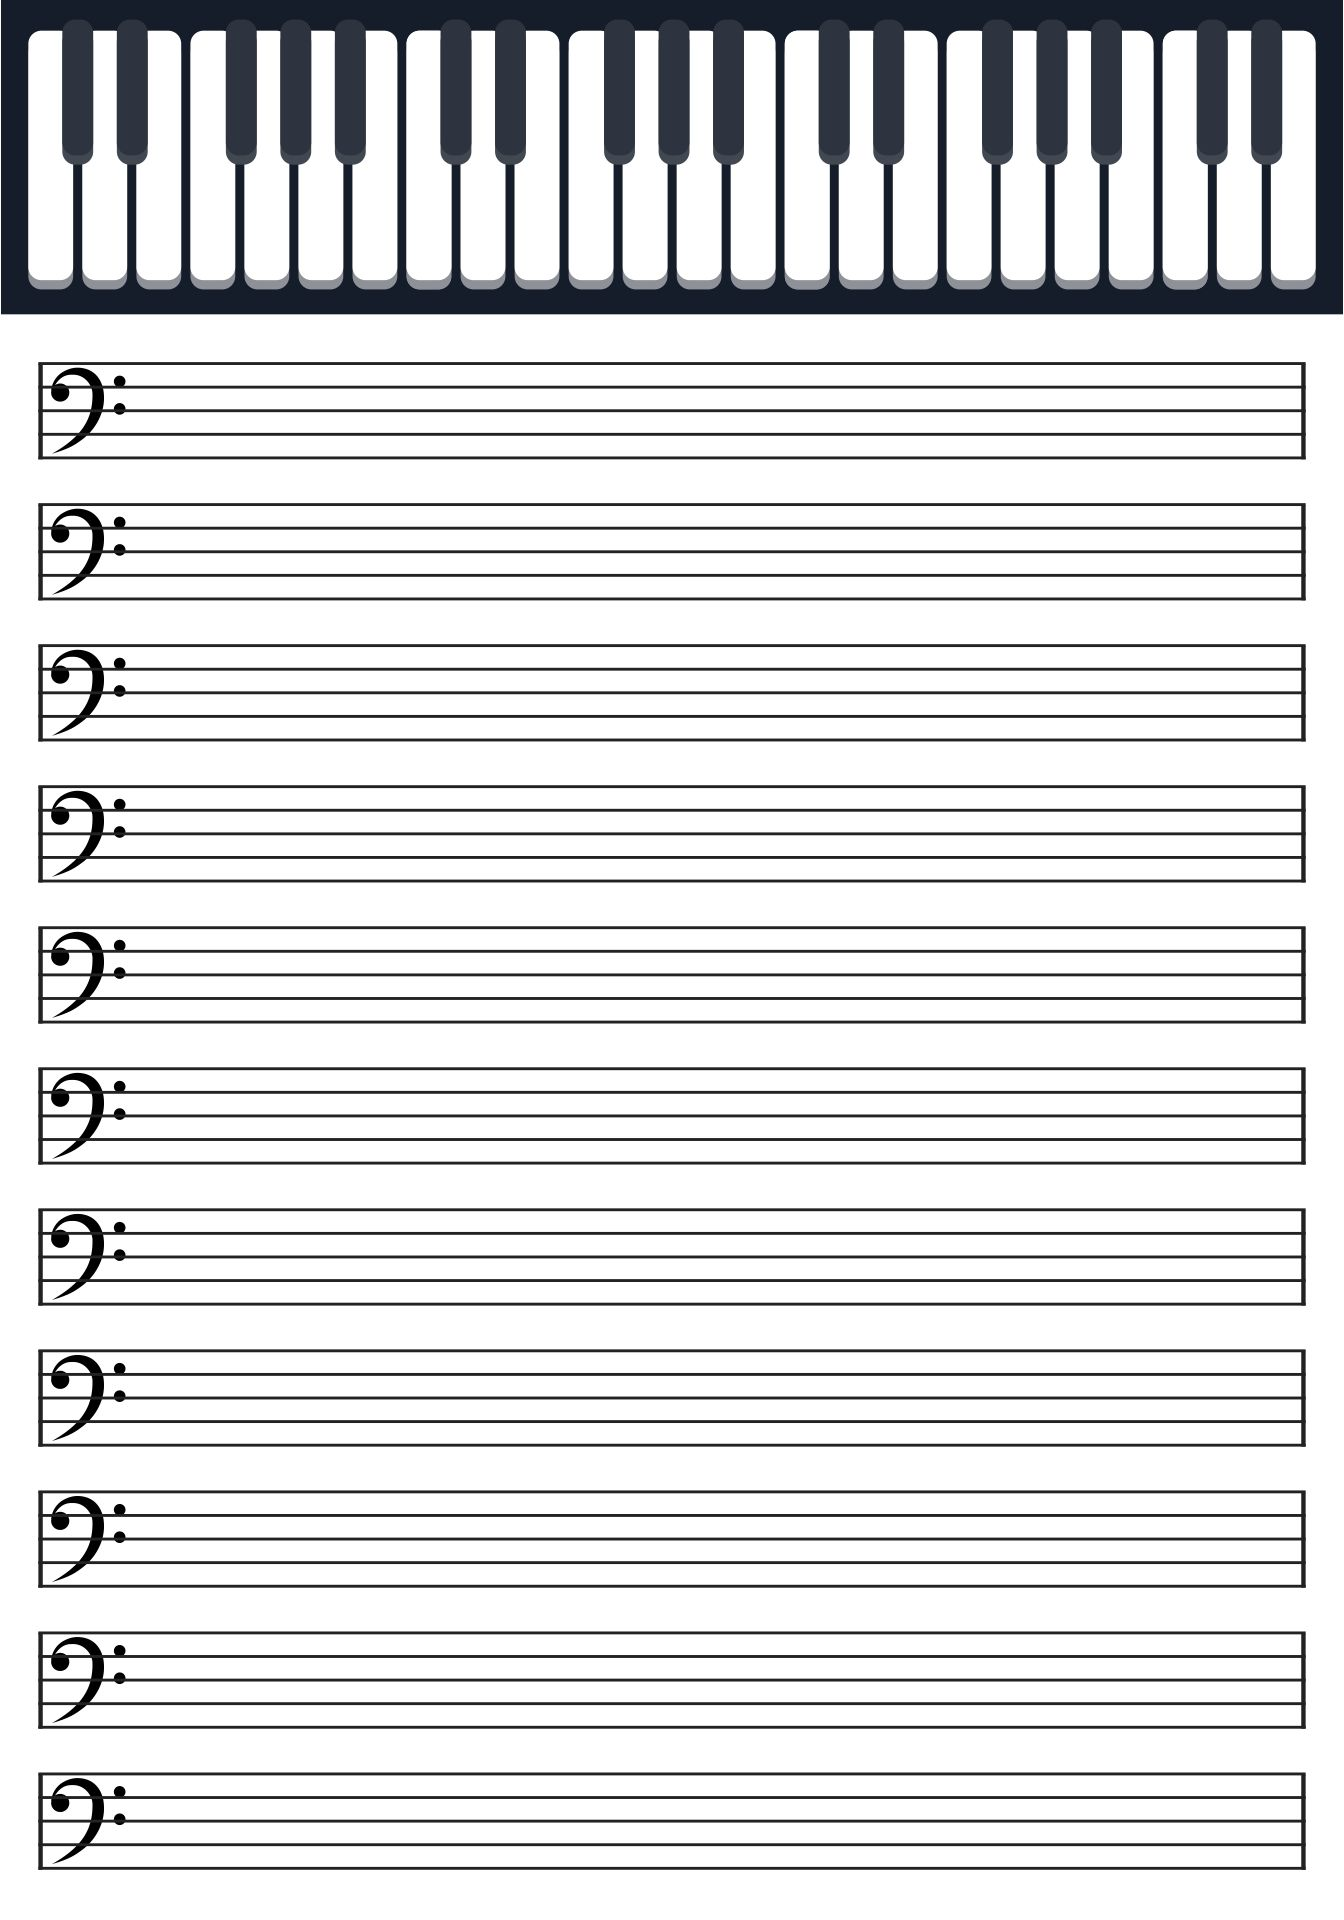 blank sheet of music